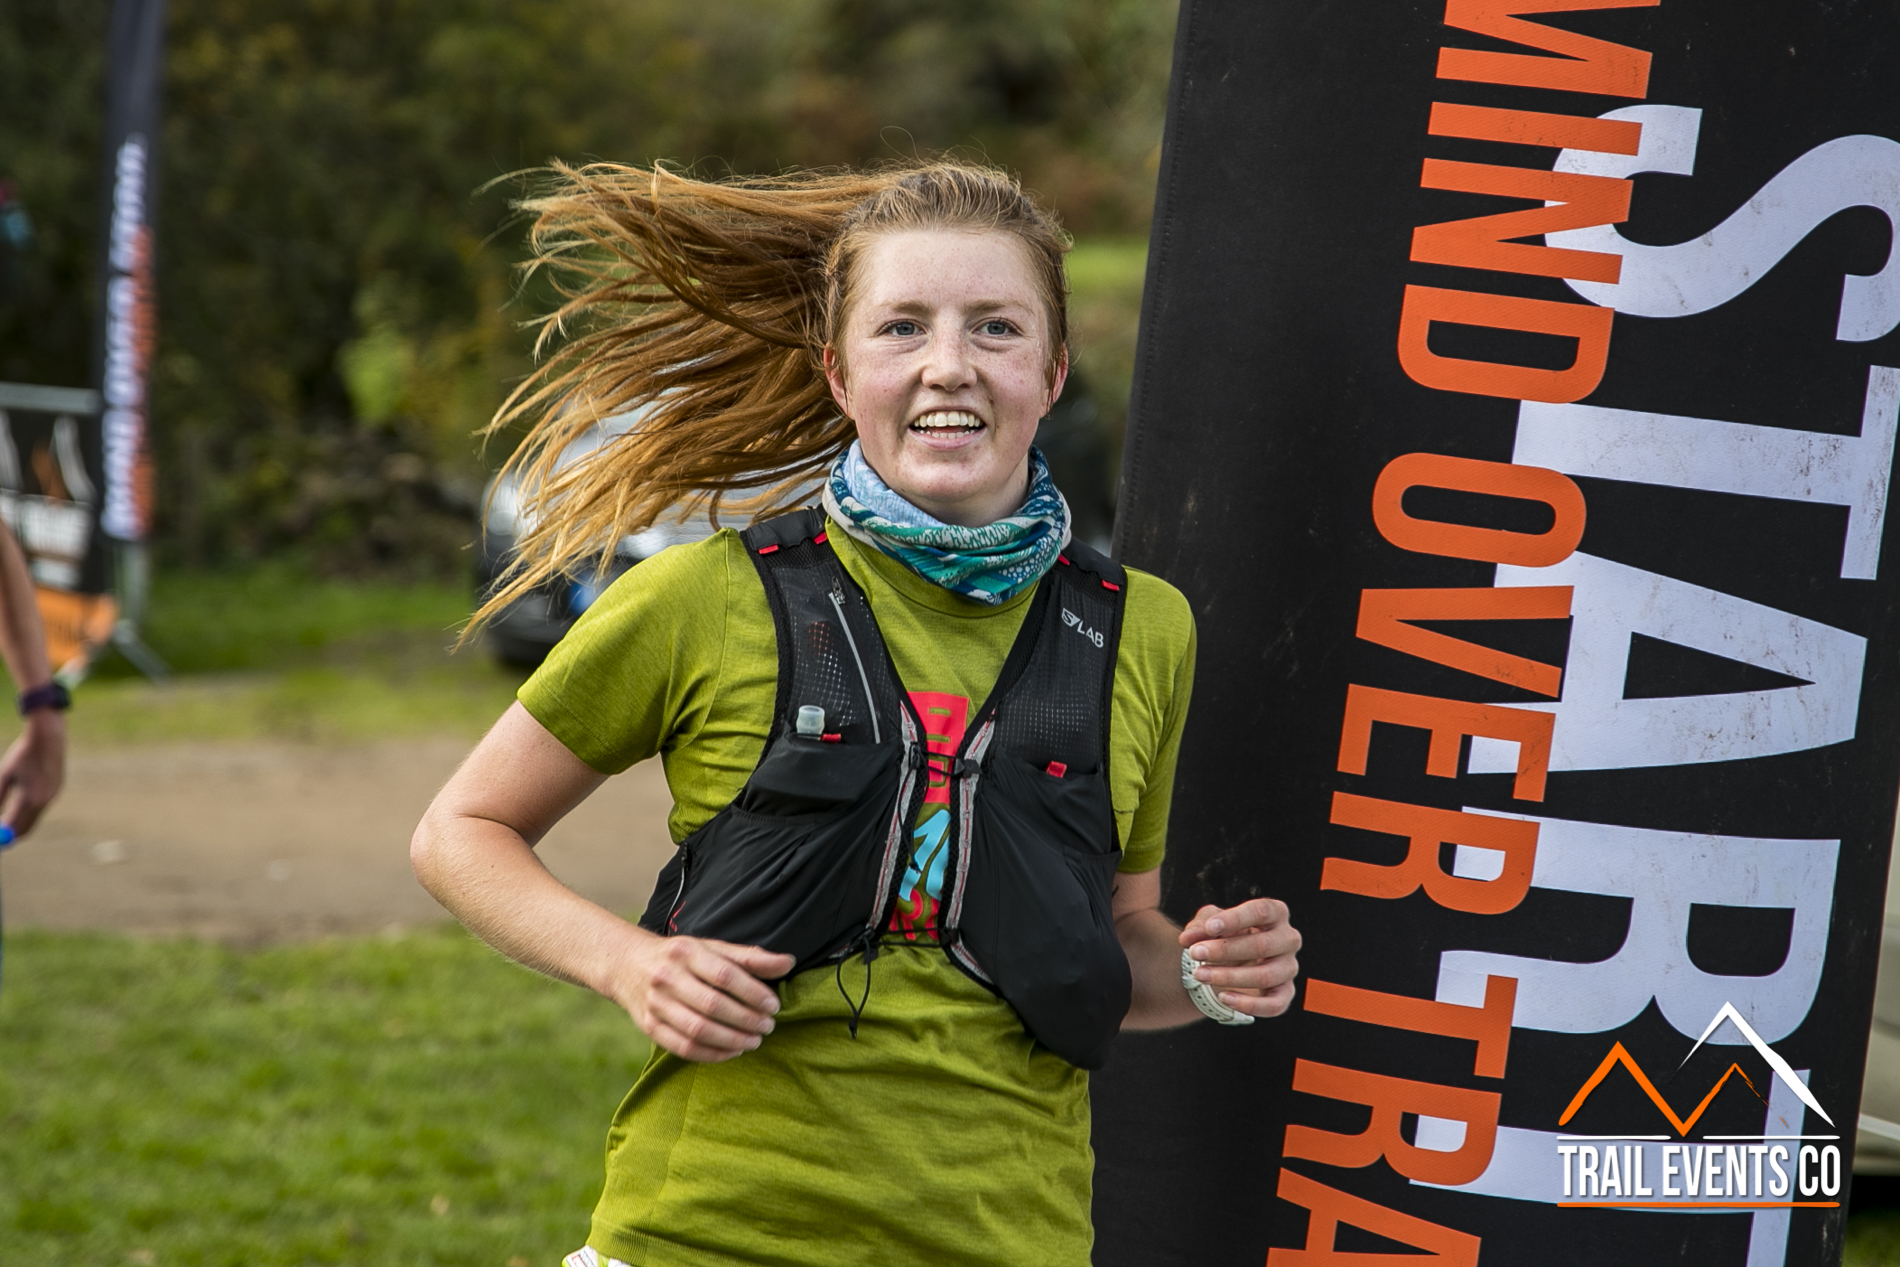 Jodie Gauld - Trail Events Co Brand Ambassador